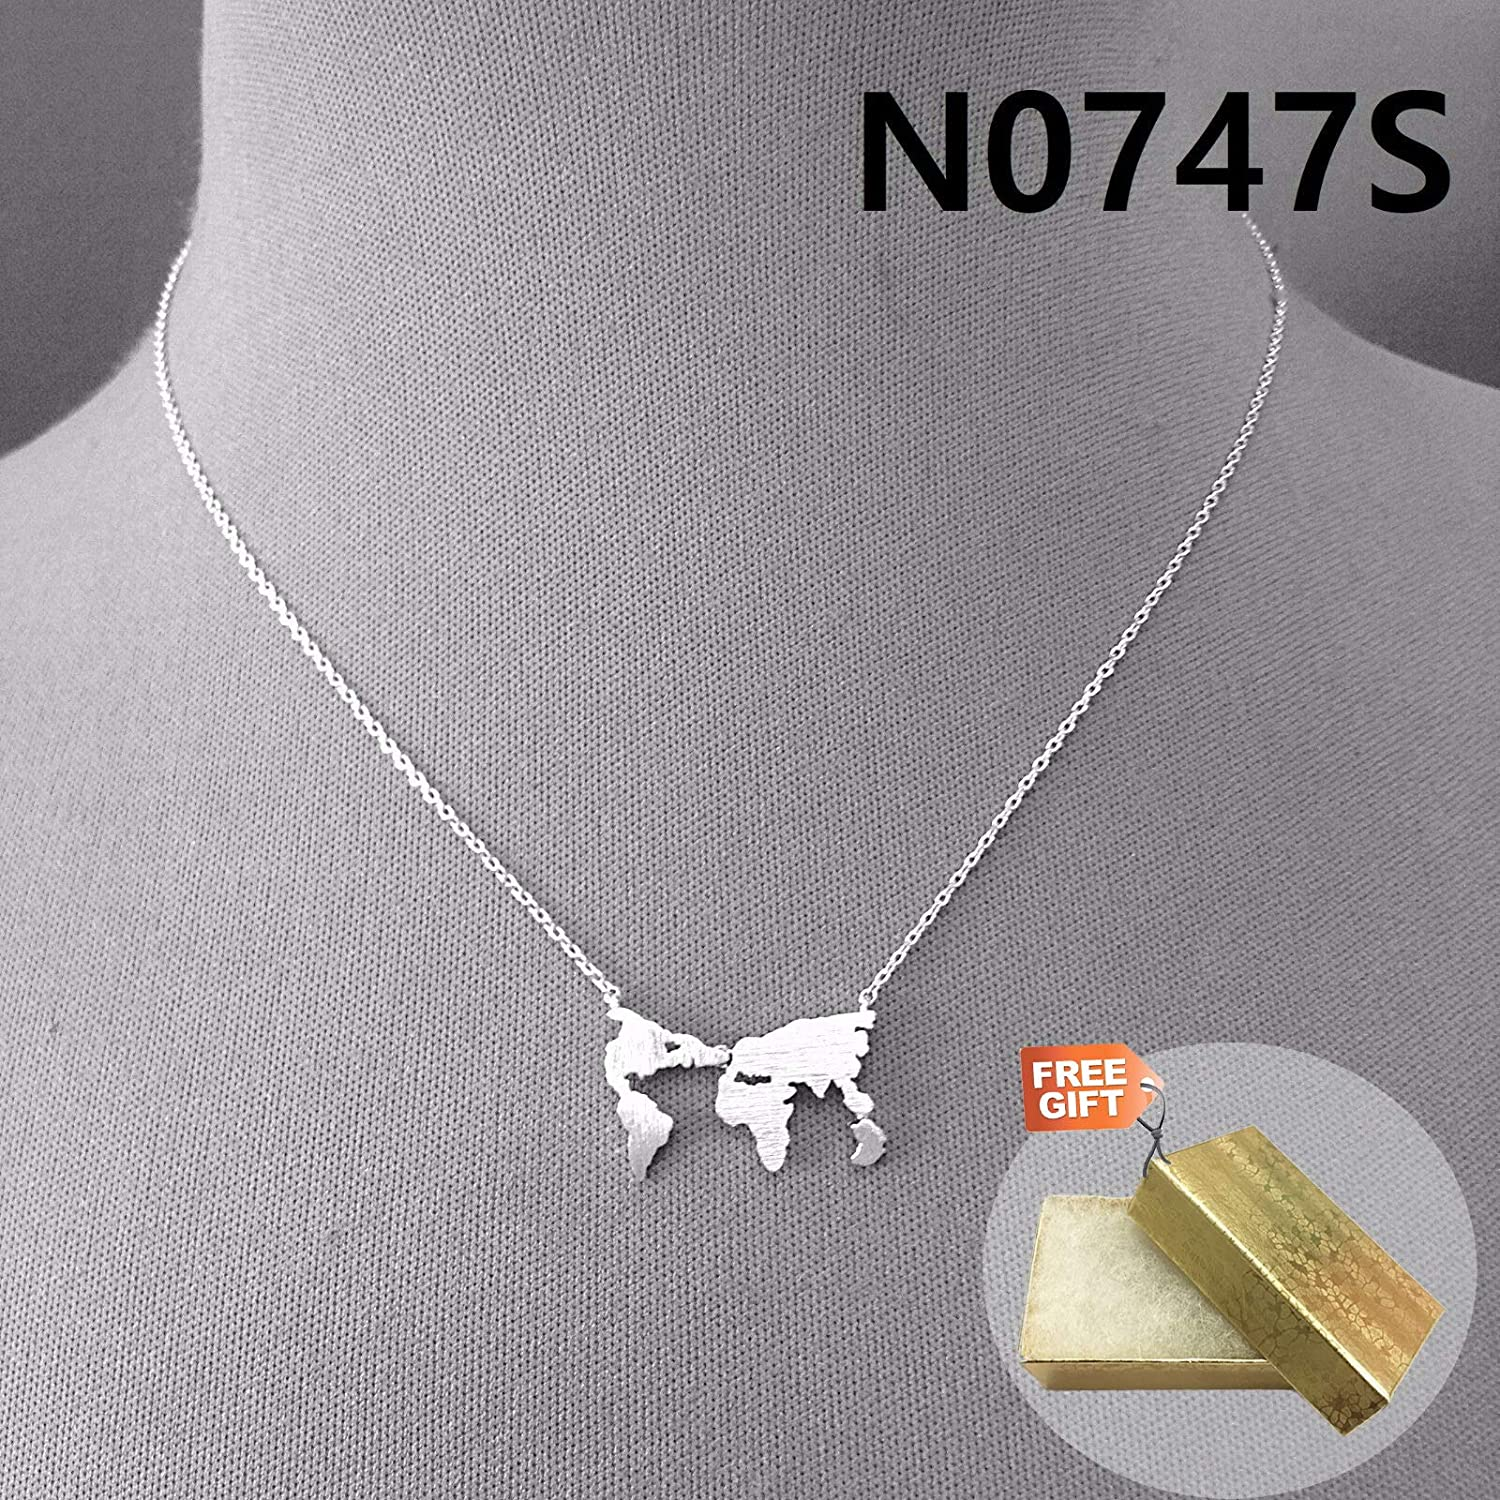 Gold Cotton Filled Gift Box for Free Simple Silver Finished Mini Map World Earth Shape Pendant Necklace N0747S